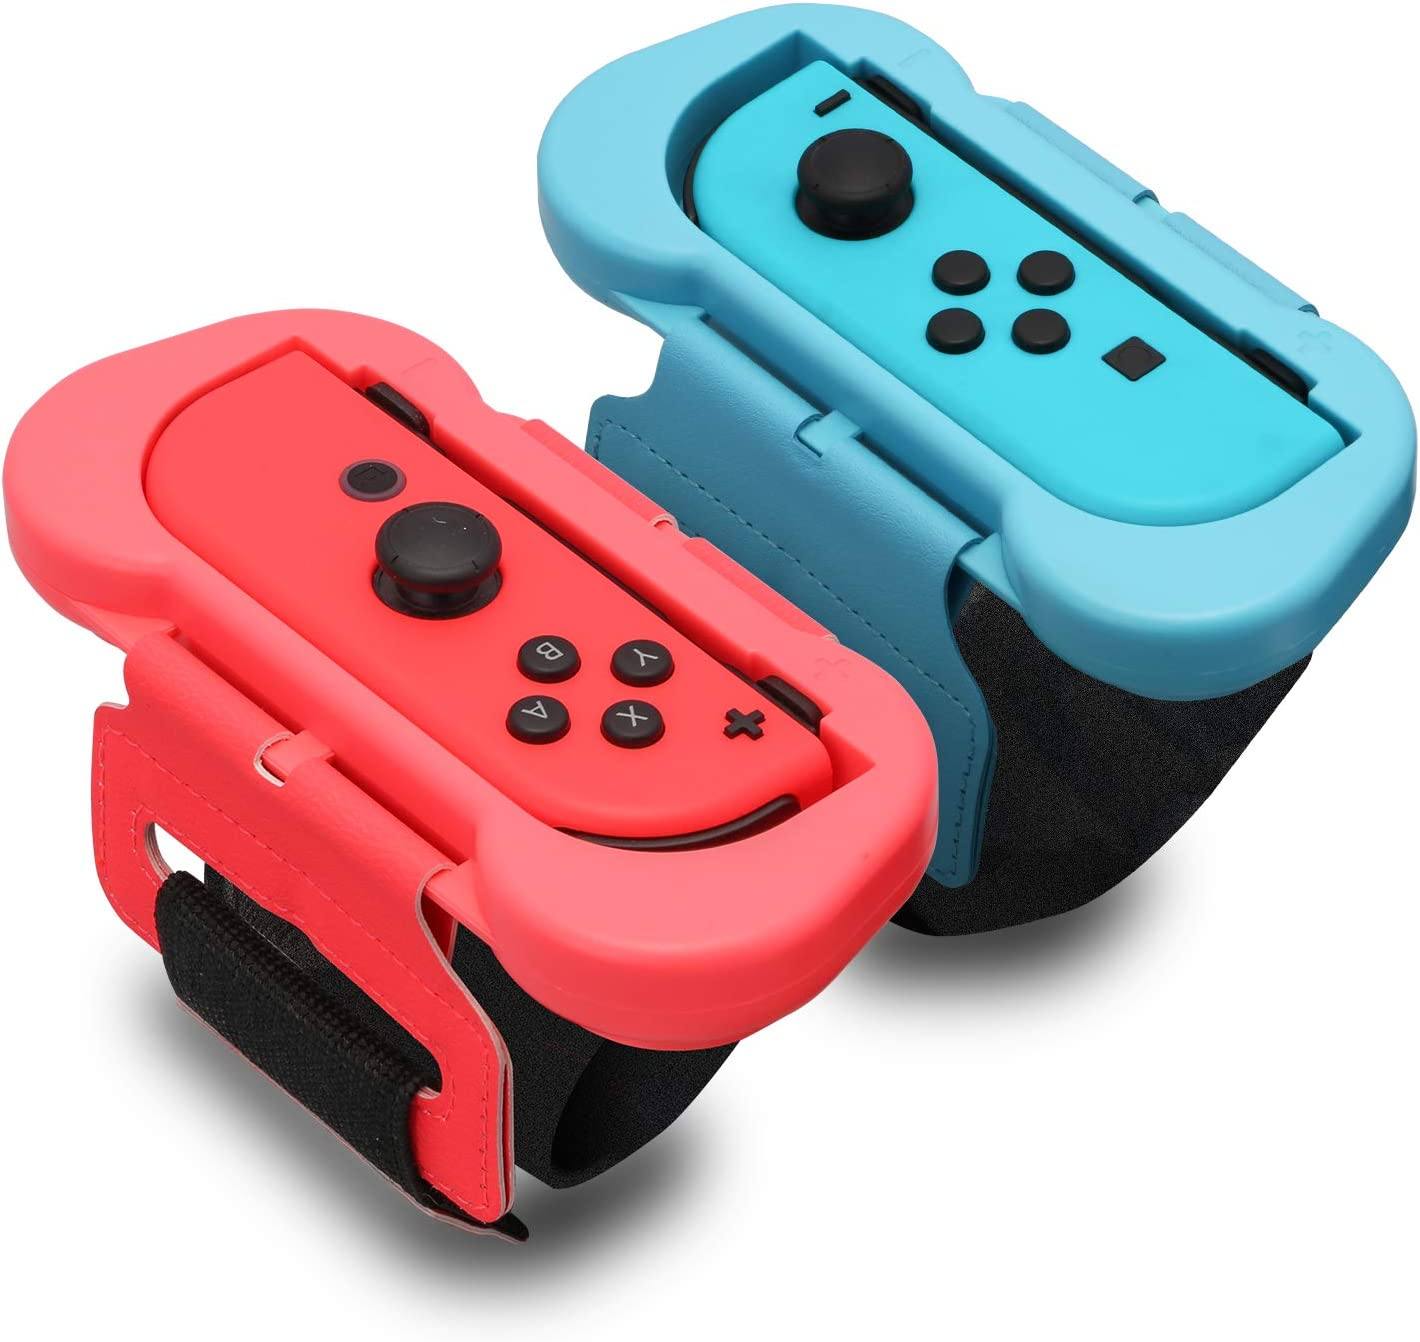 Wrist Band for Just Dance 2020 - Nintendo Switch Standard Edition - 2 Packs (Fit for 4.72-7.5 inches Wrist Circumference) - Blue and Red